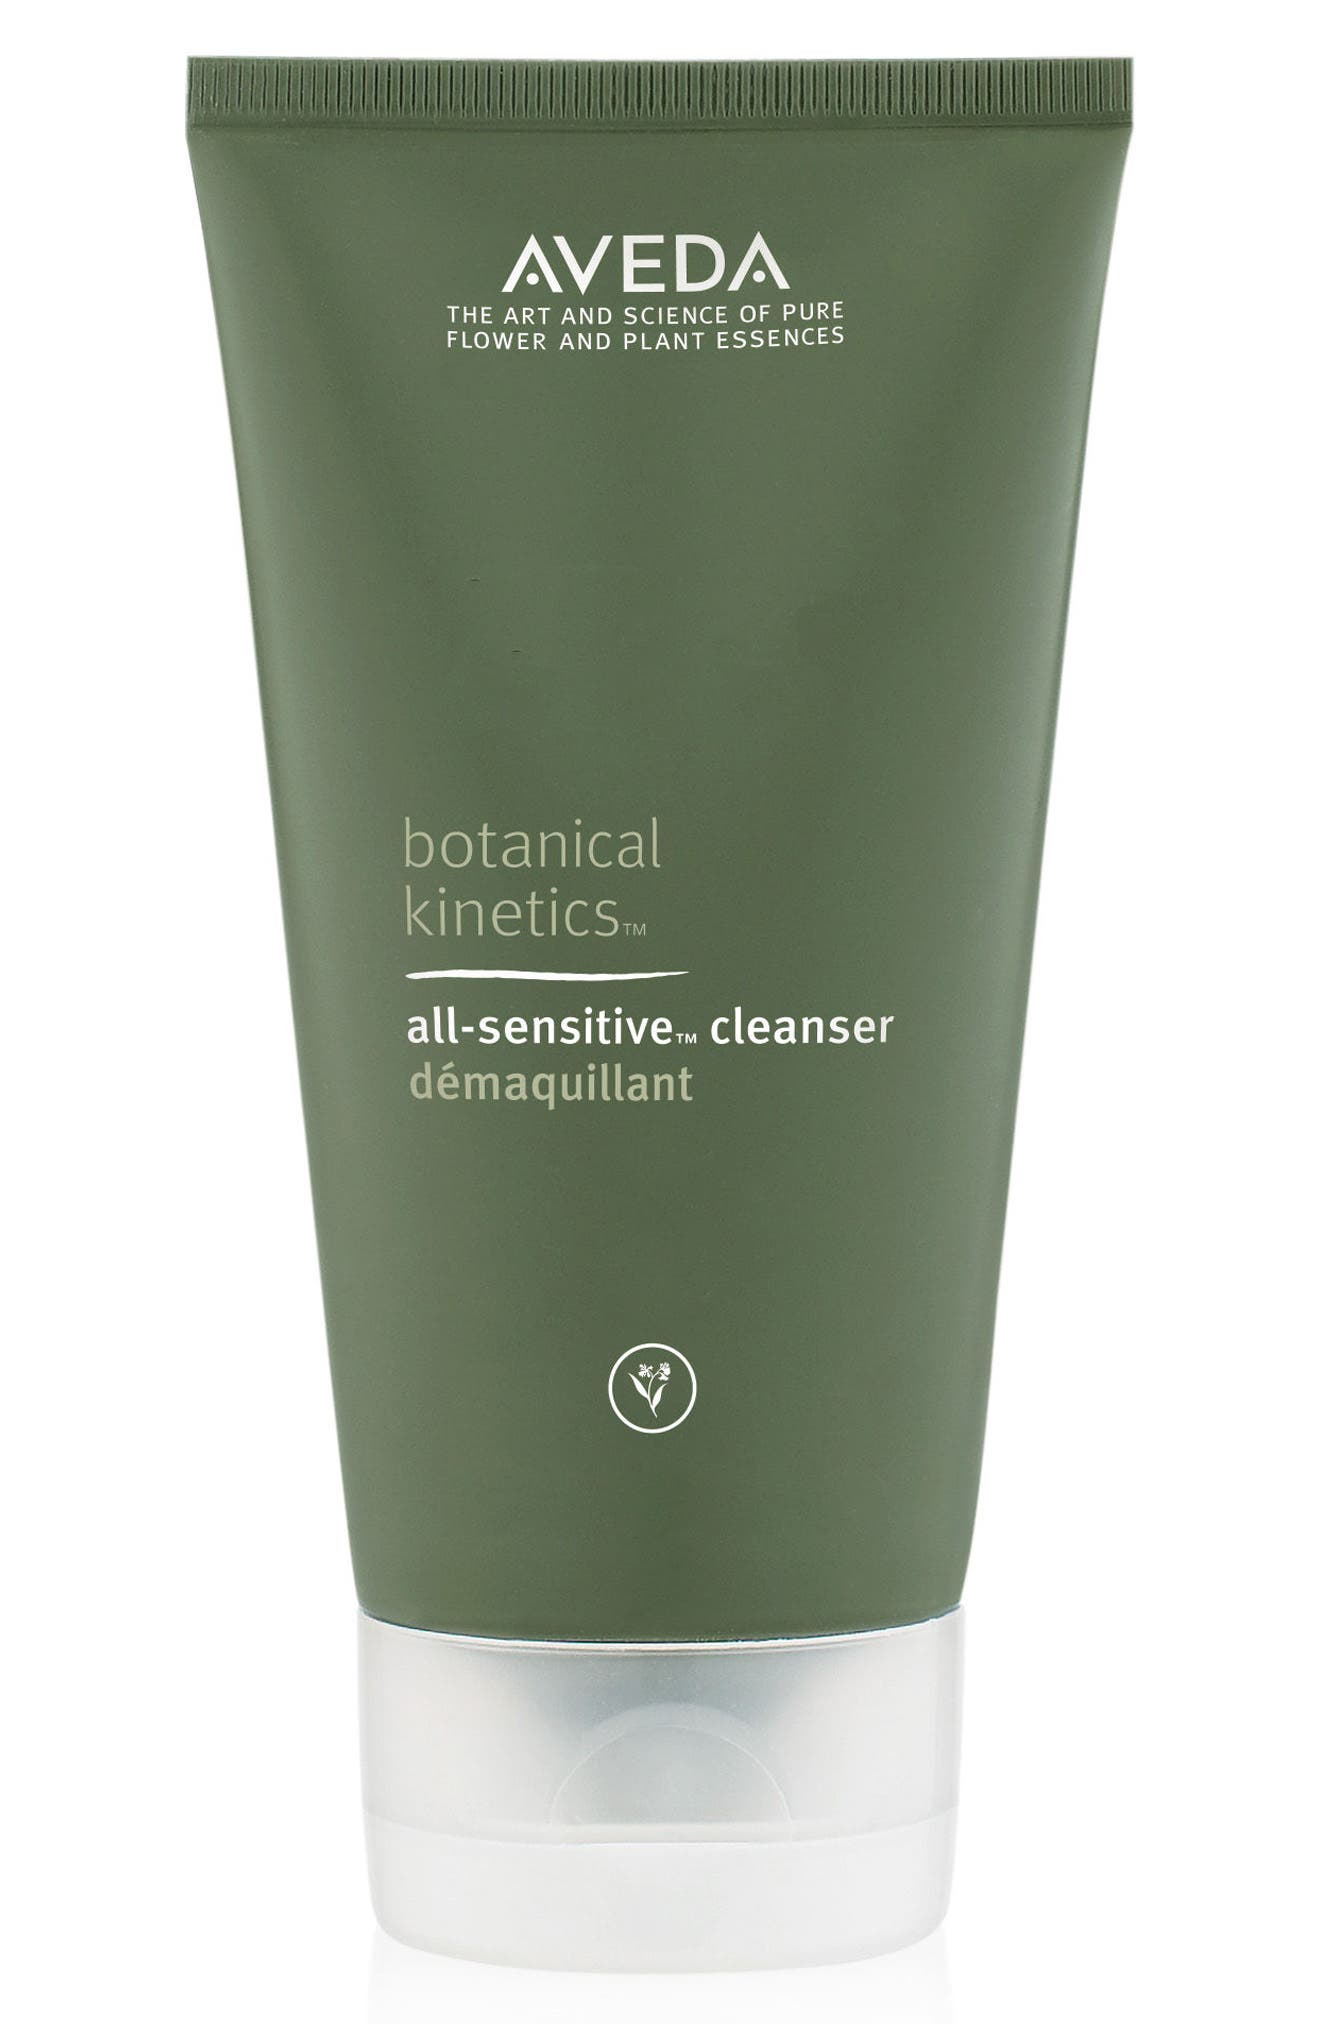 Alternate Image 1 Selected - Aveda botanical kinetics™ All-Sensitive Cleanser